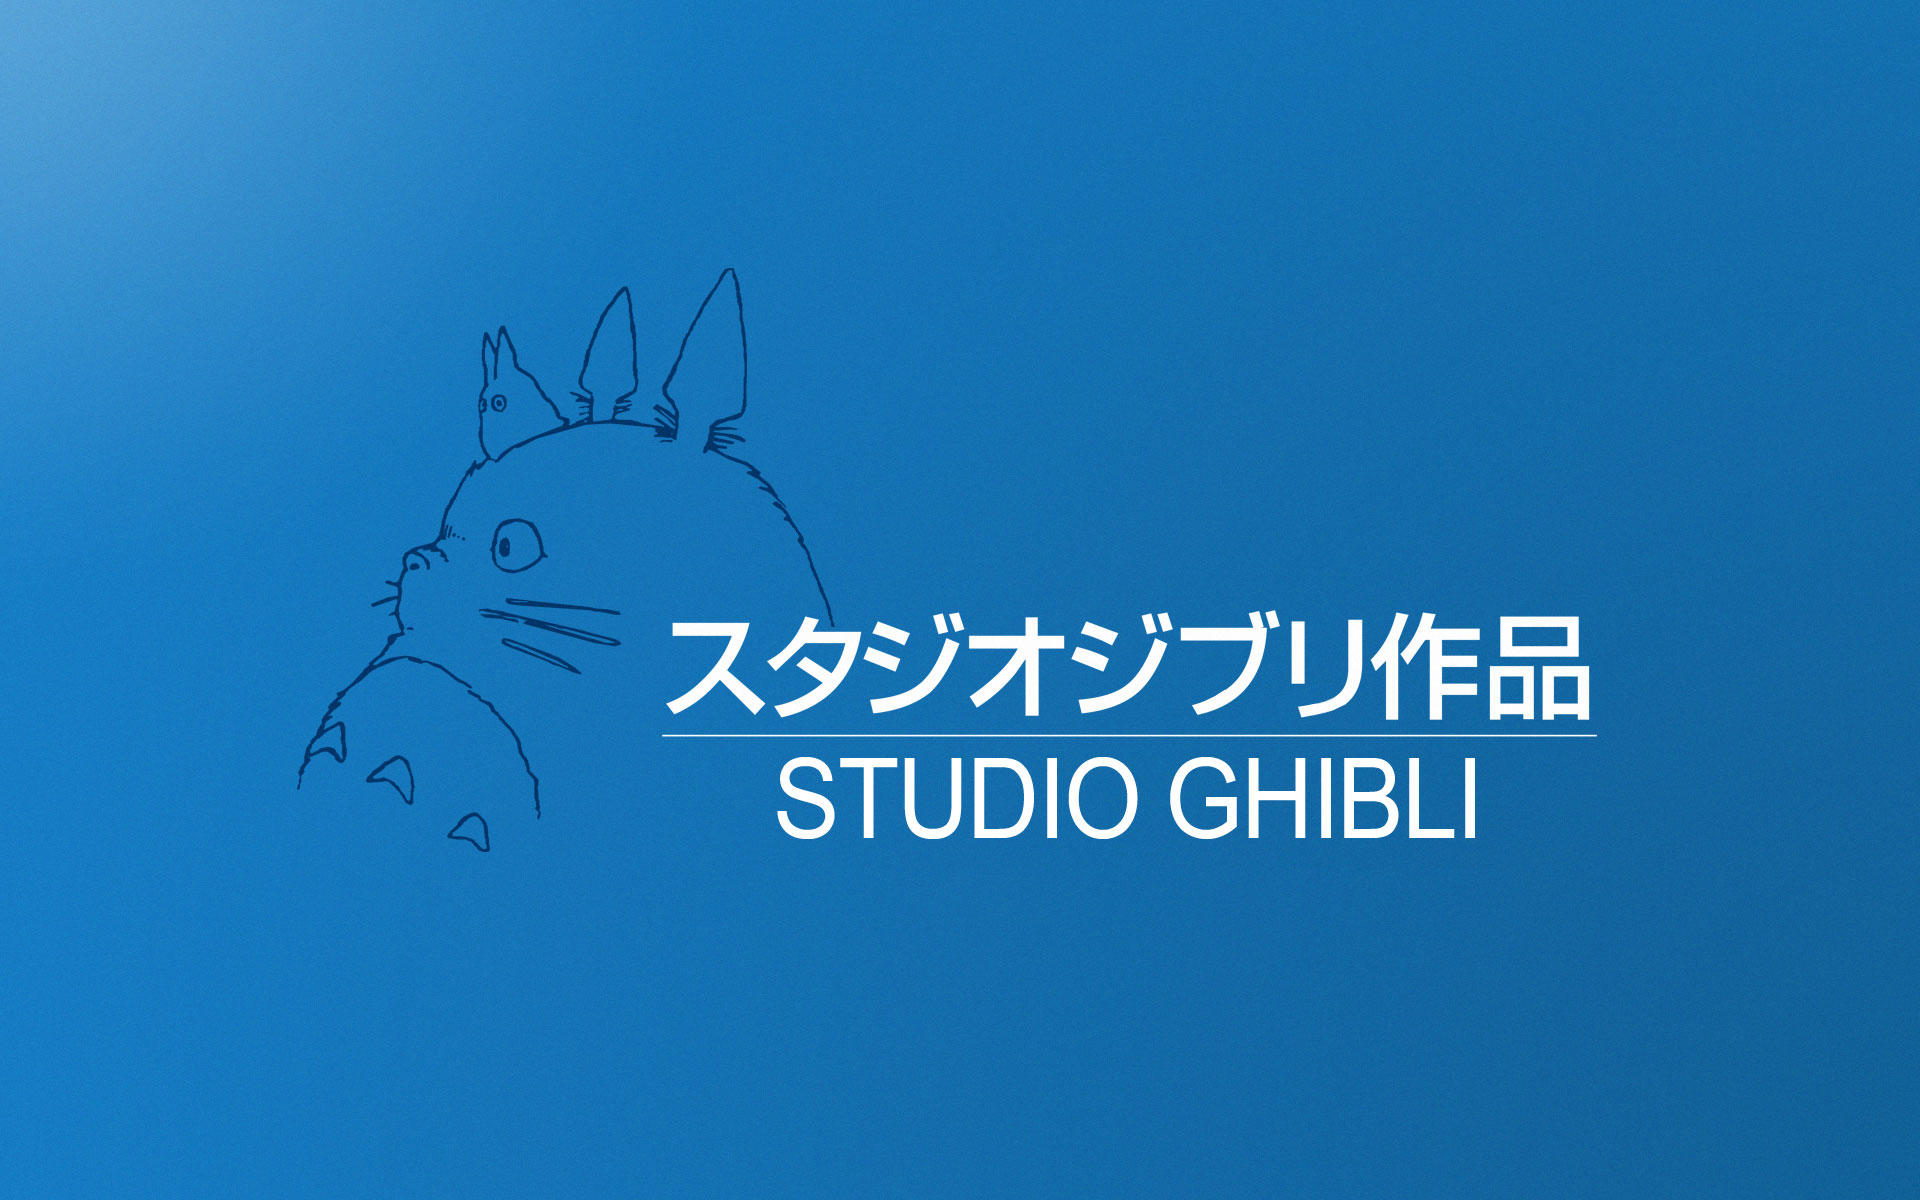 Studio Ghibli is releasing its first fully computer-animated film this winter